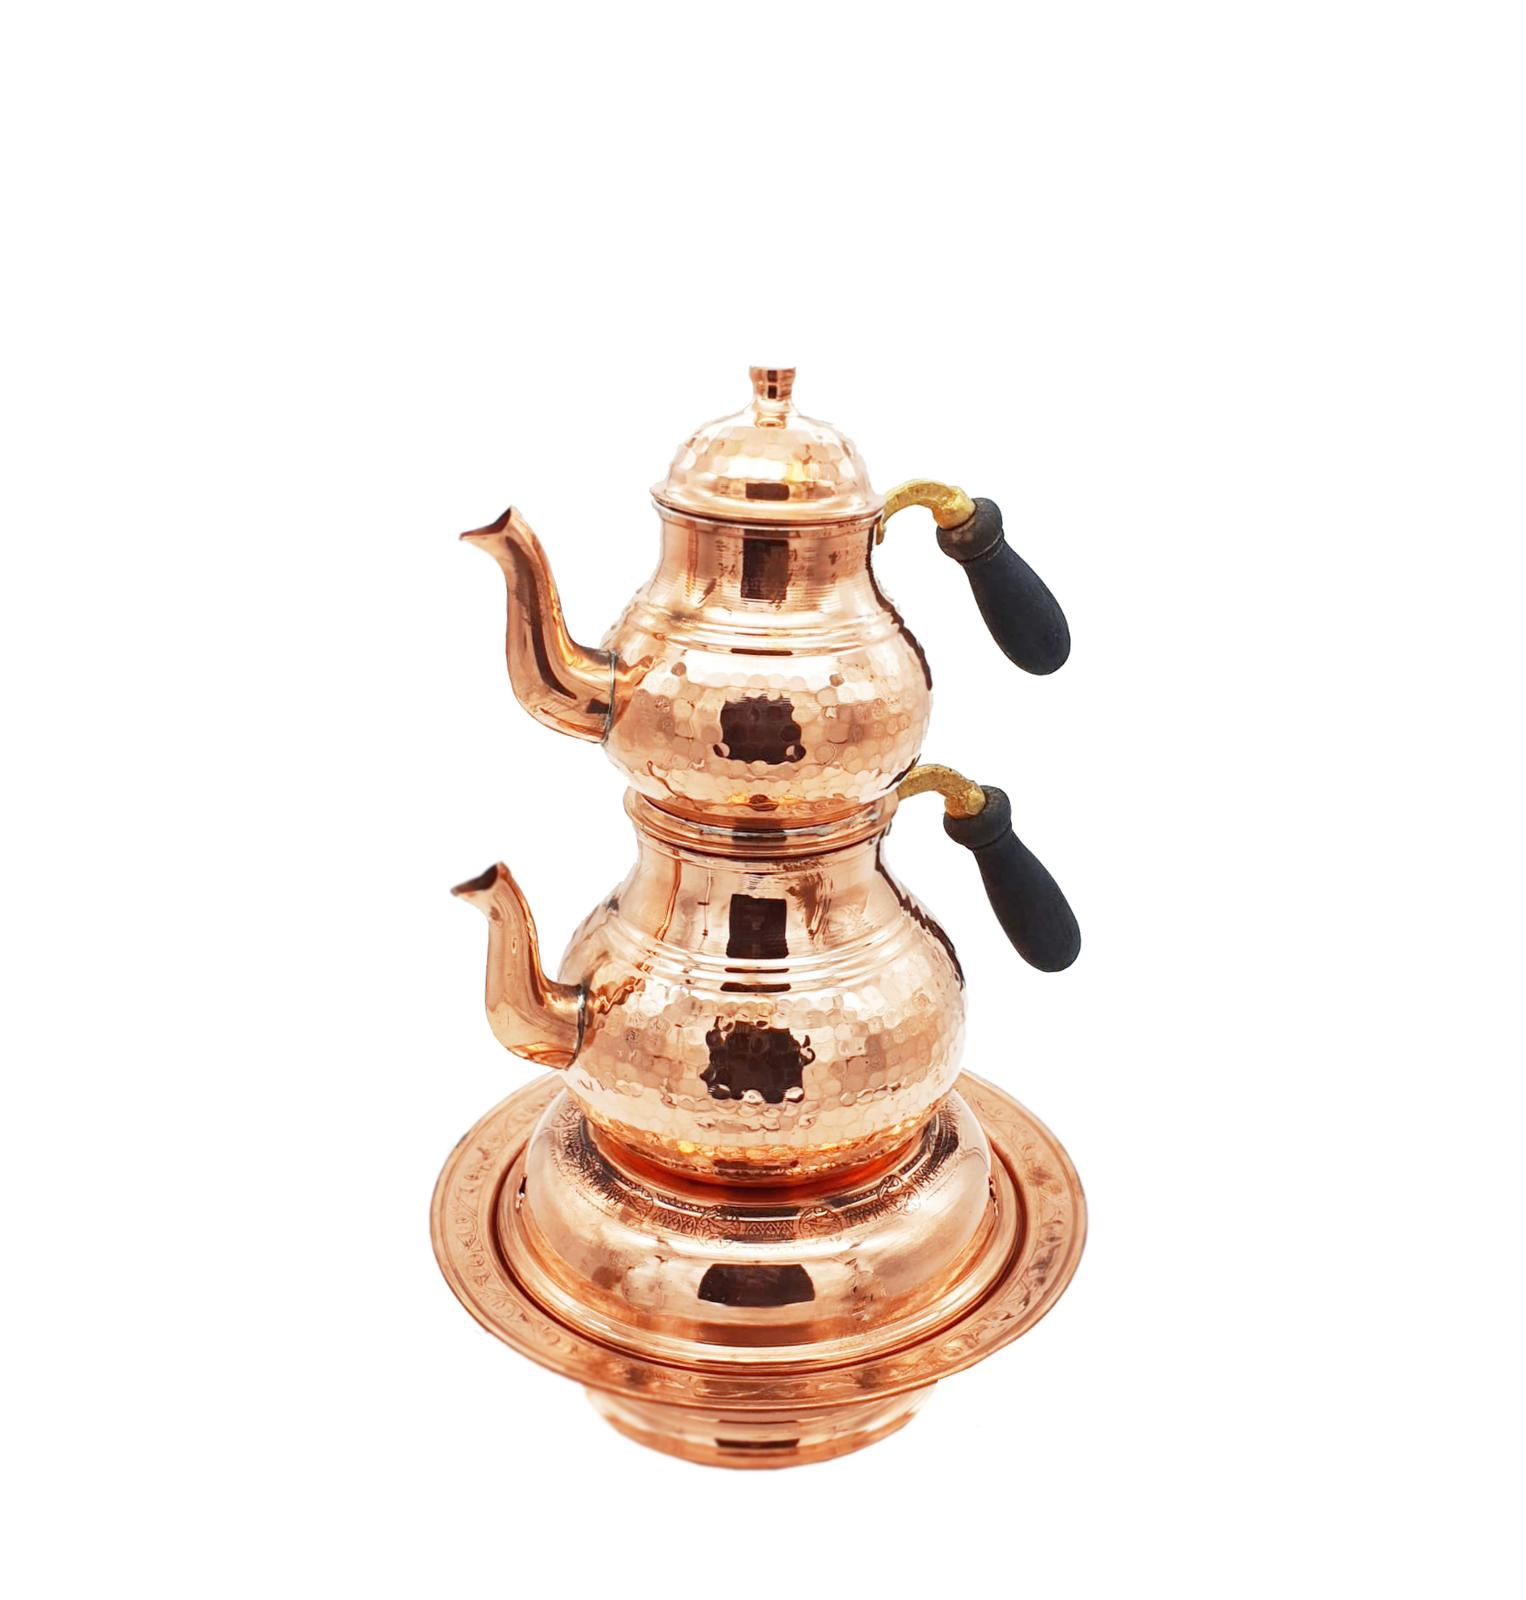 Buy Turkish Tea Pot with Candle Warmer - Small